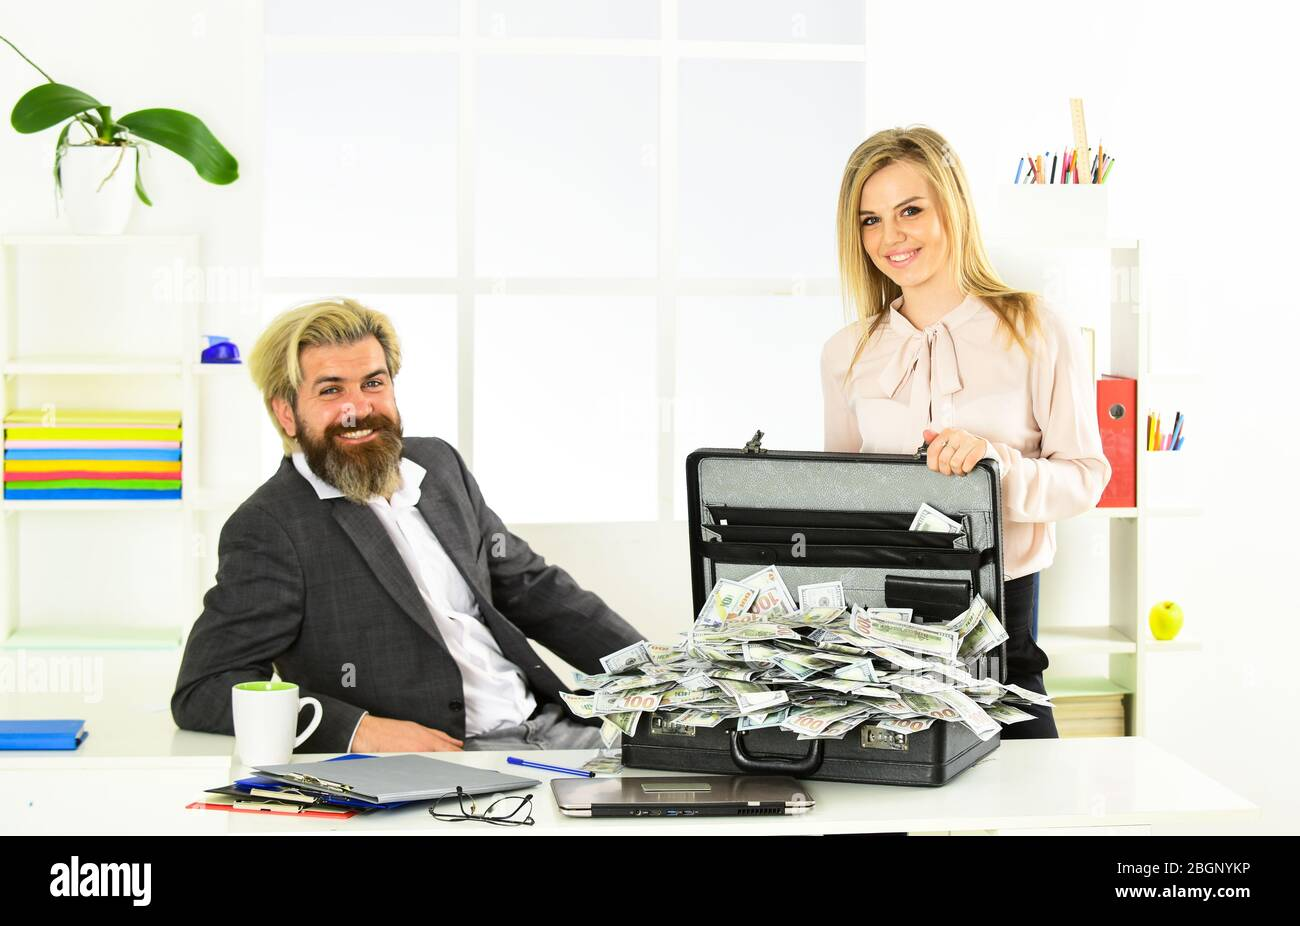 lack of money. corporate leather bag. business couple with case at workstation. happiness and success. partners holding briefcase. suitcase with money. good deal. modern life and business. Stock Photo